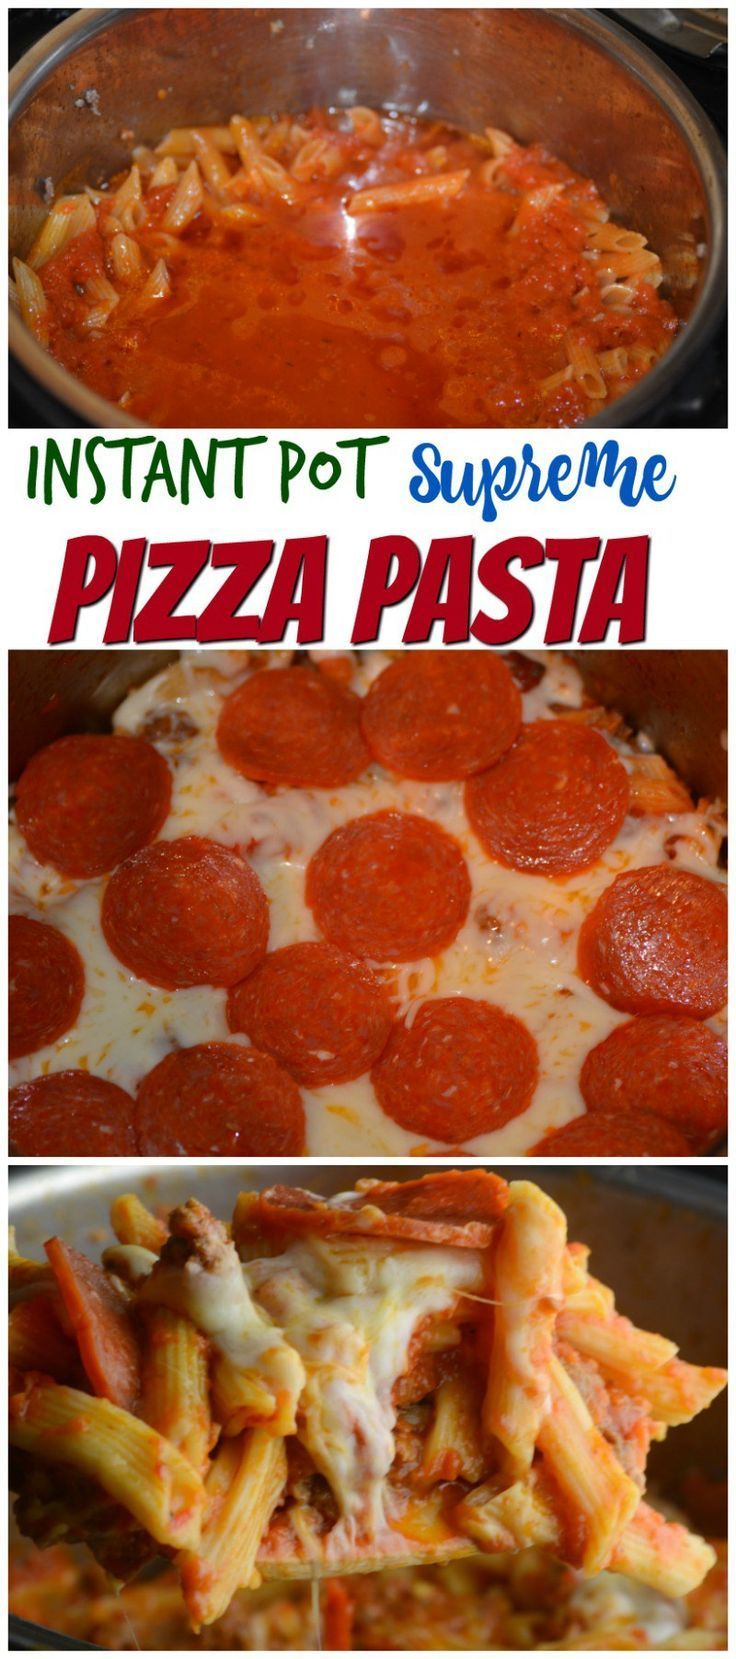 Instant Pot Pizza Pasta (made Hawaiian and delicious) change pasta to 1 lb and it was perfect!